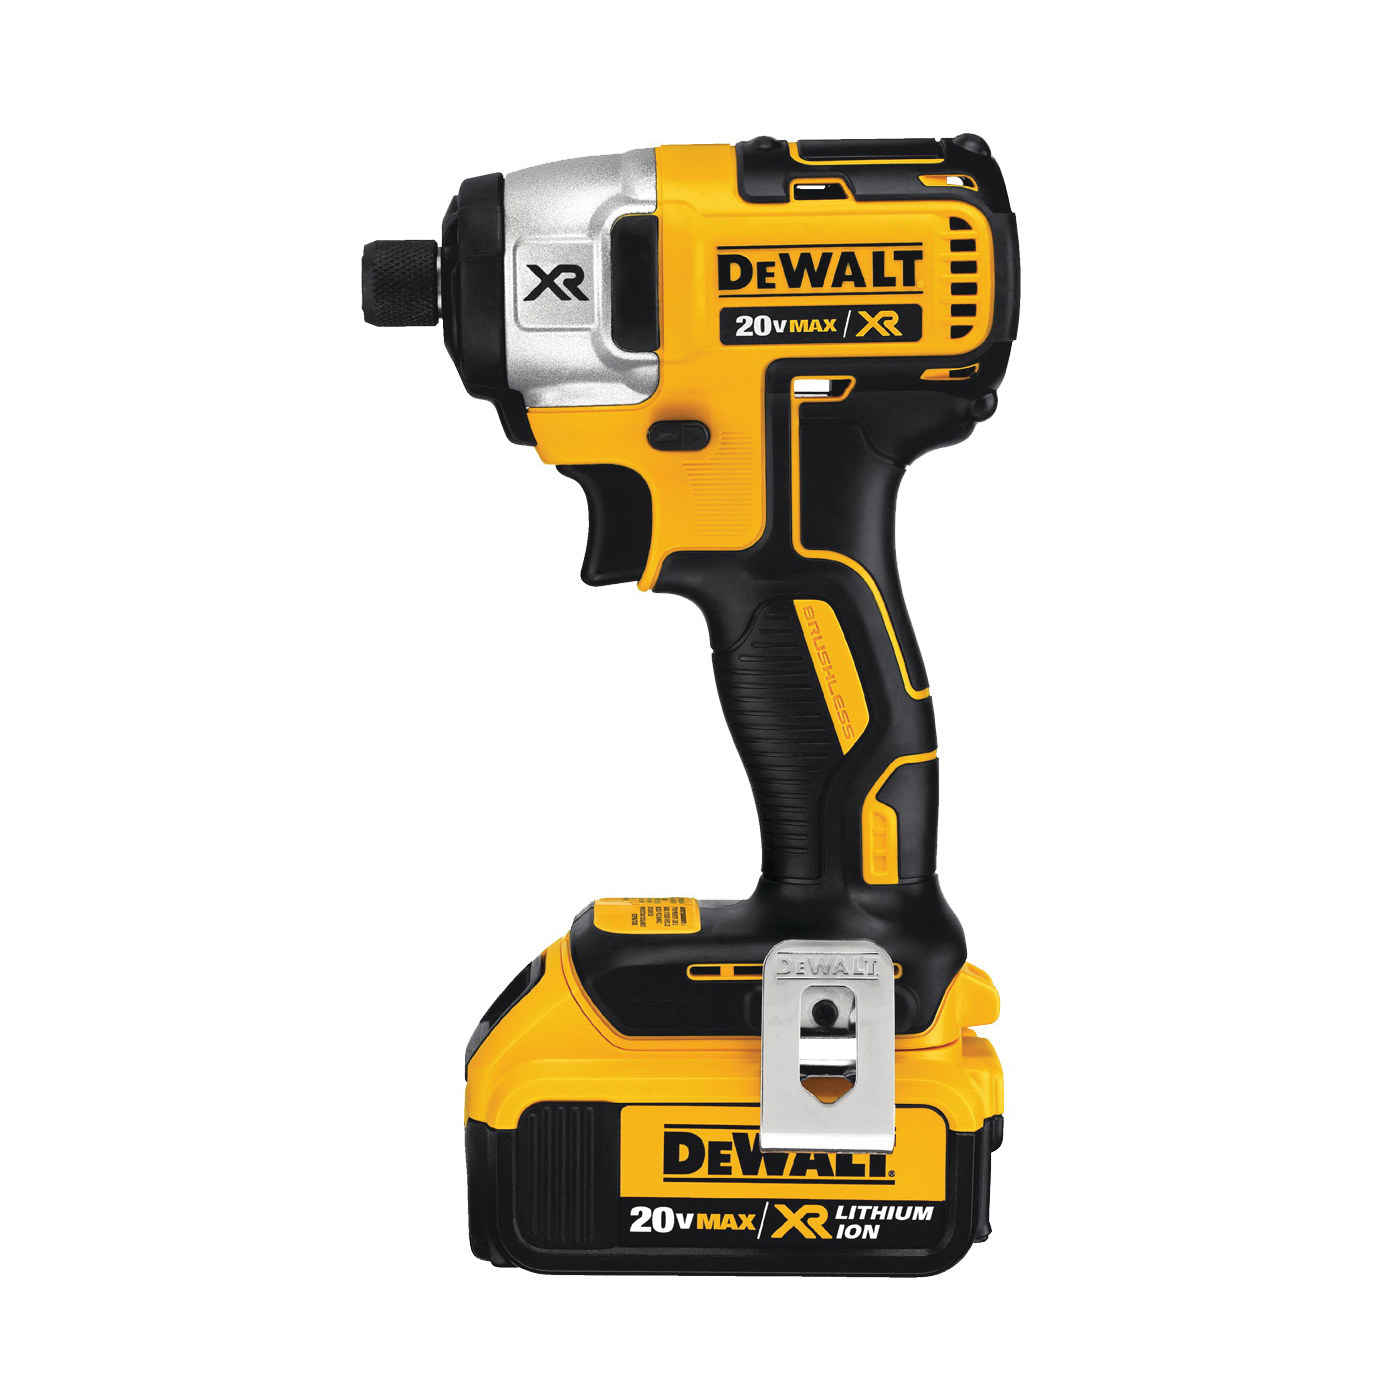 Picture of DeWALT DCF887M2/DCF886M2 Impact Driver Kit, Kit, 20 V Battery, 4 Ah, 1/4 in Drive, Hex Drive, 3600 ipm IPM